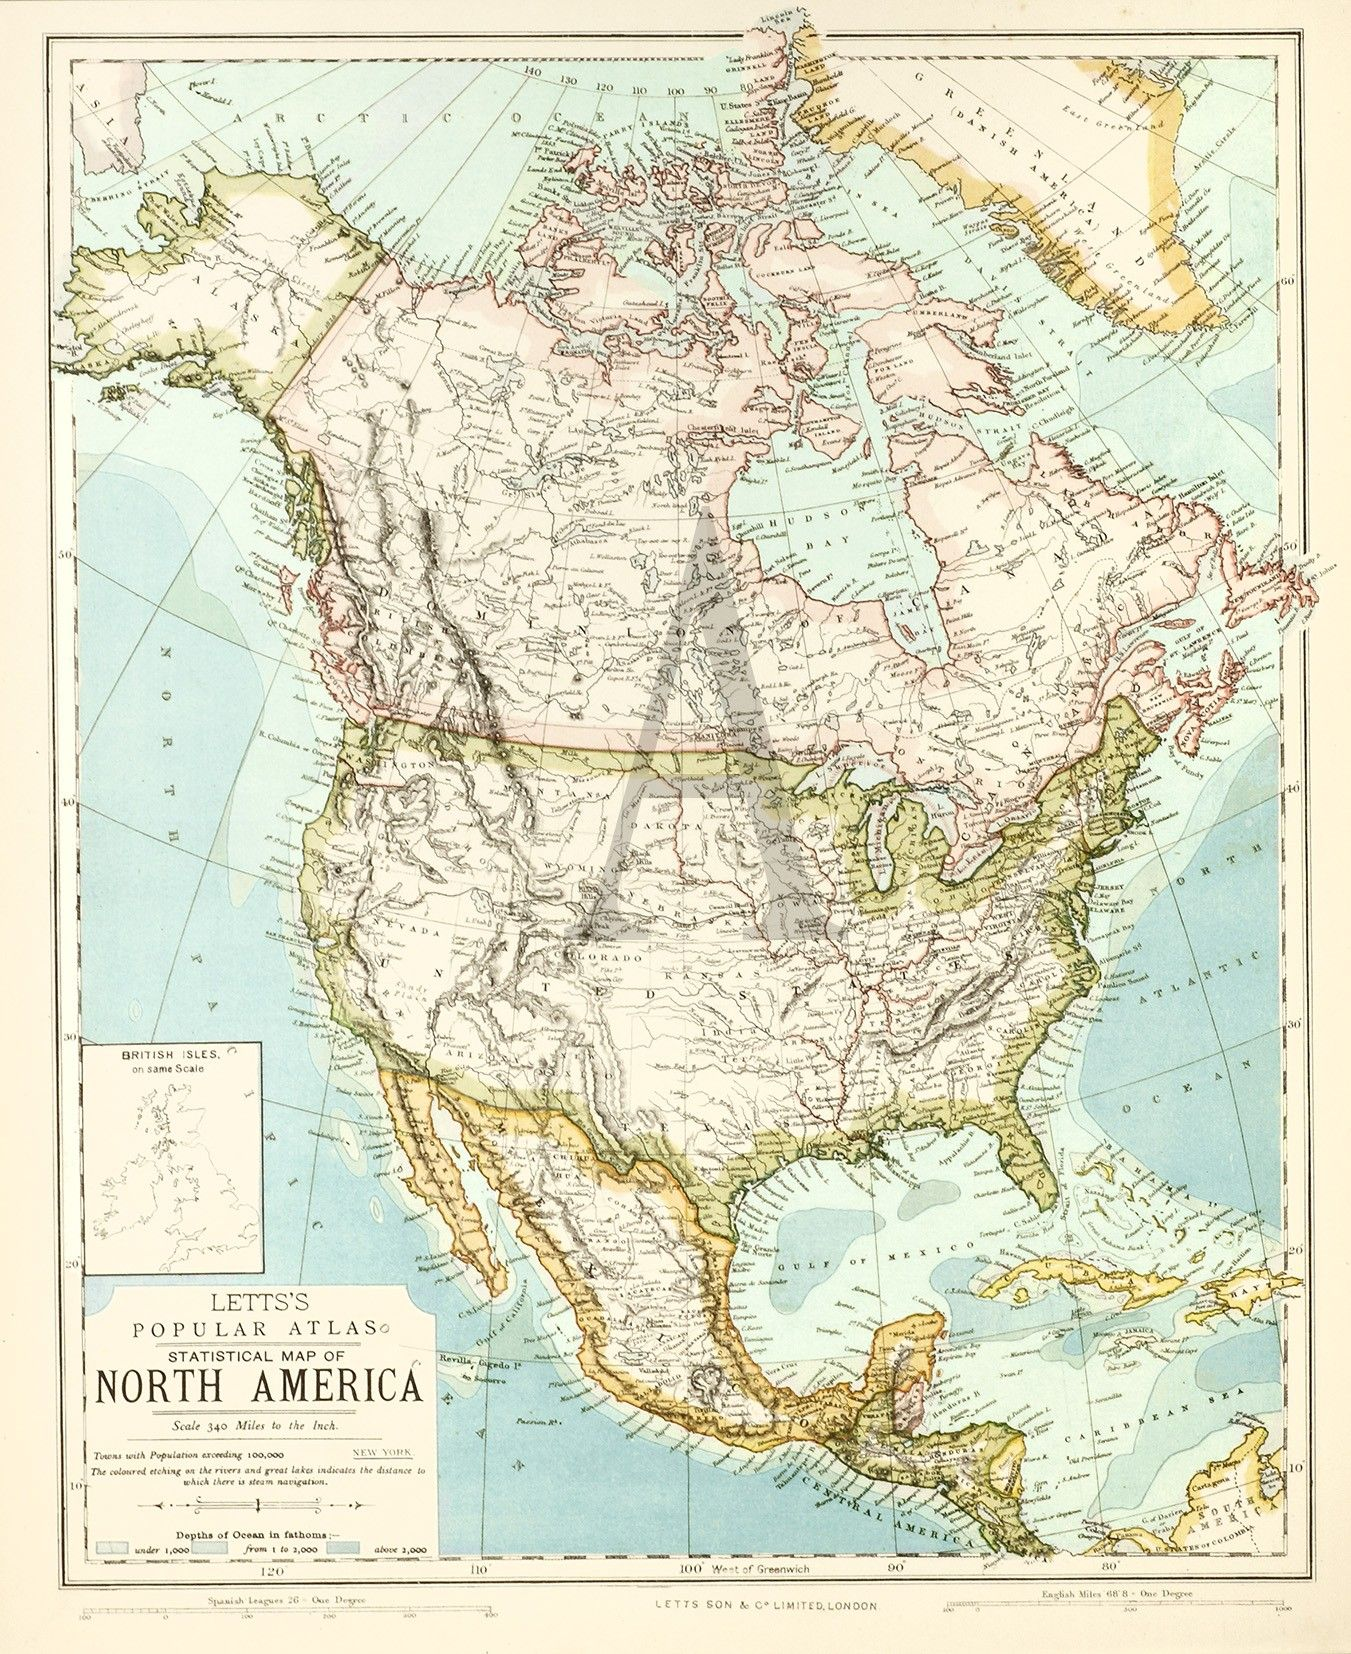 Statistical Map of North America   Maps of United States & North ...